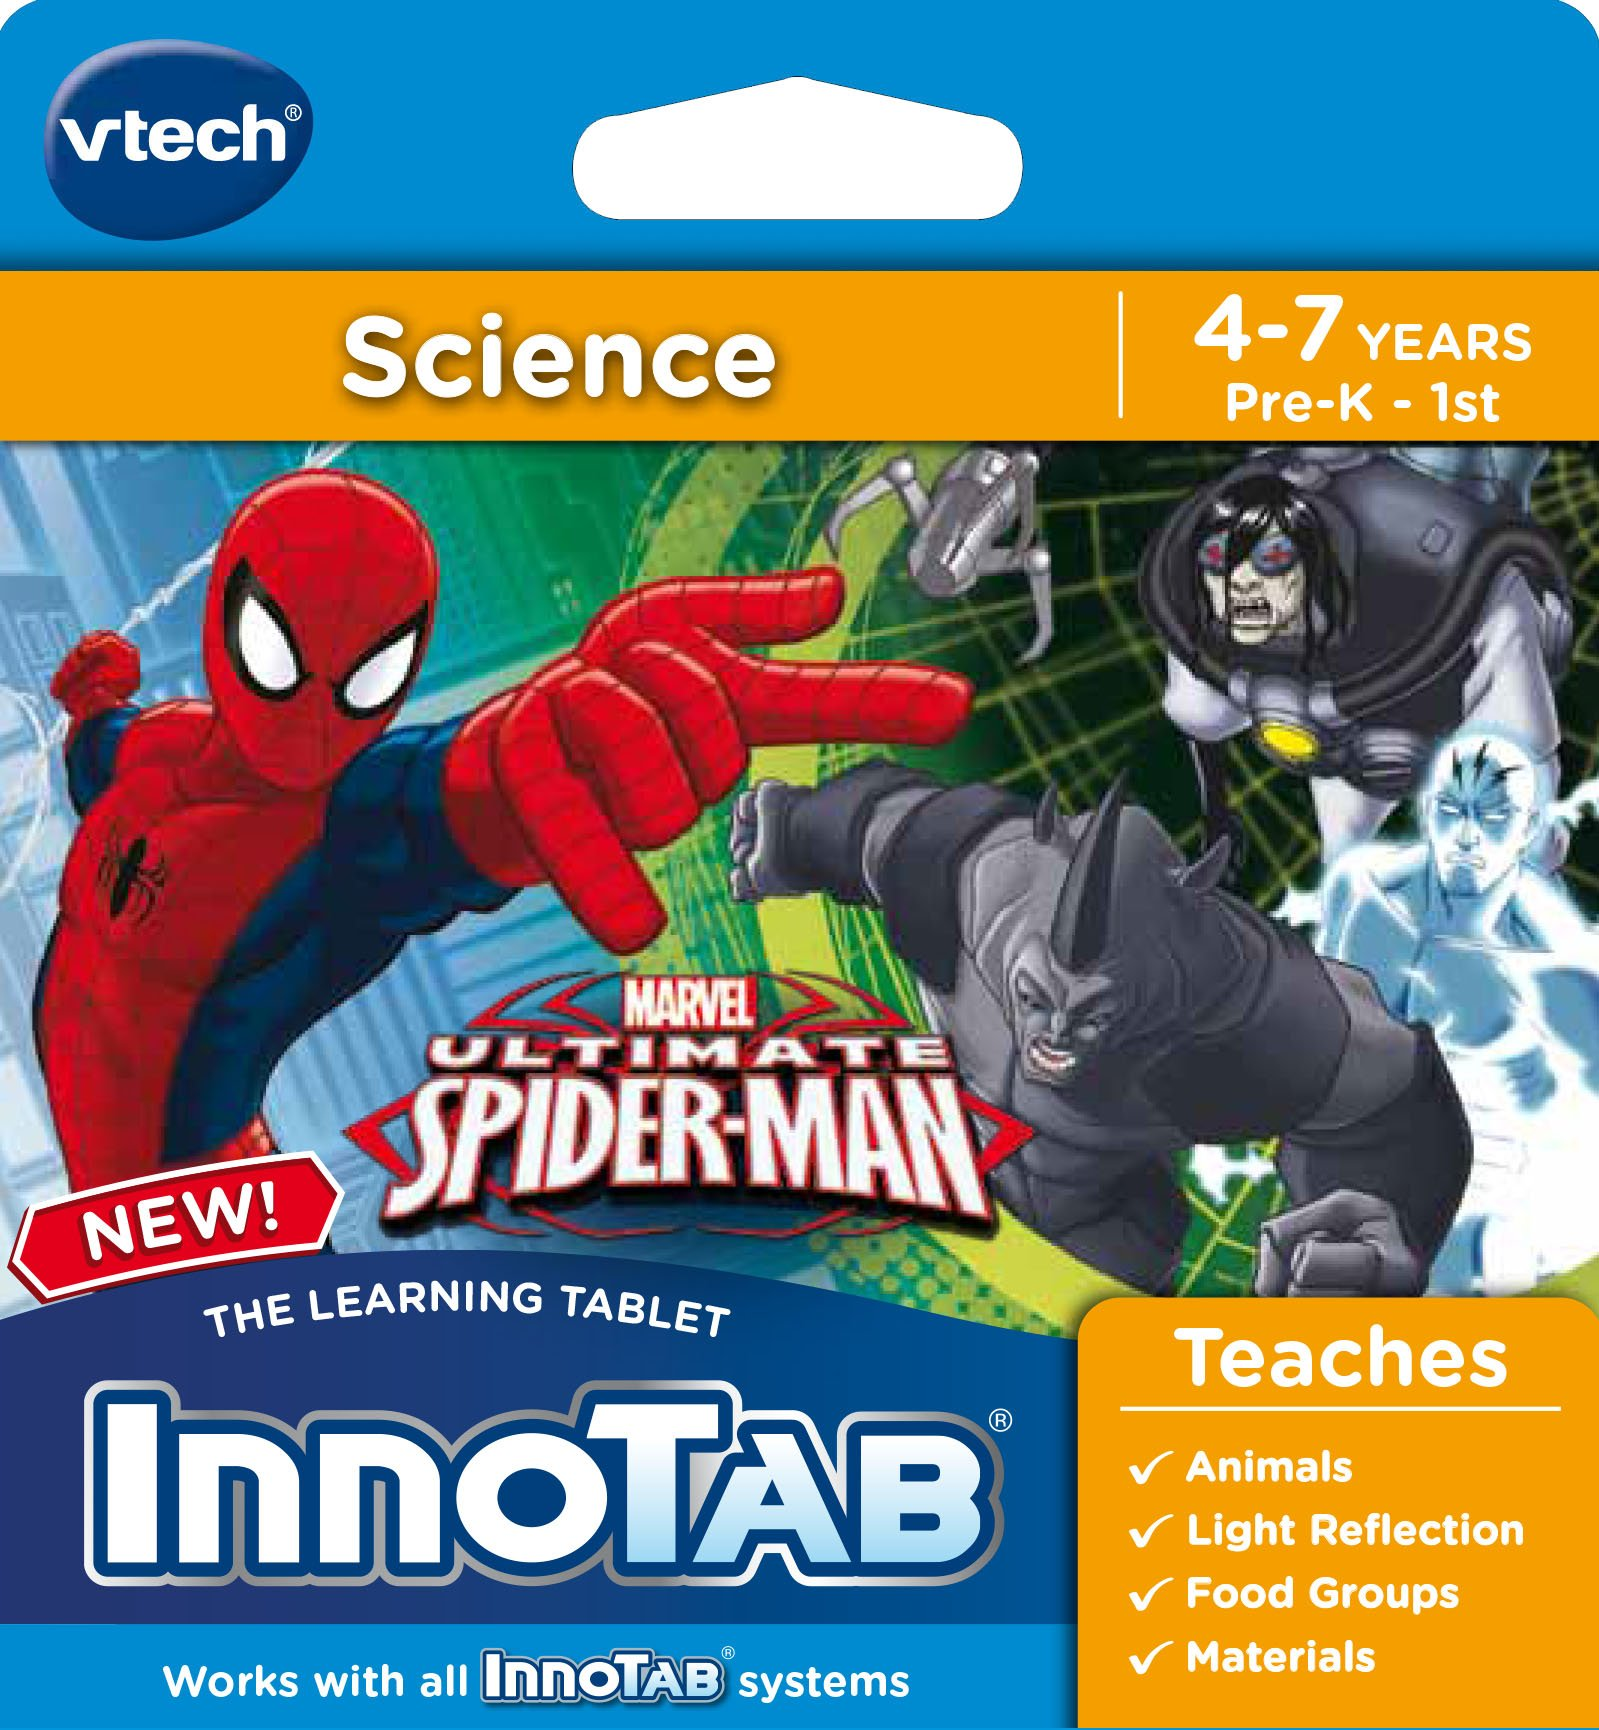 VTech InnoTab Software, Ultimate Spiderman by VTech